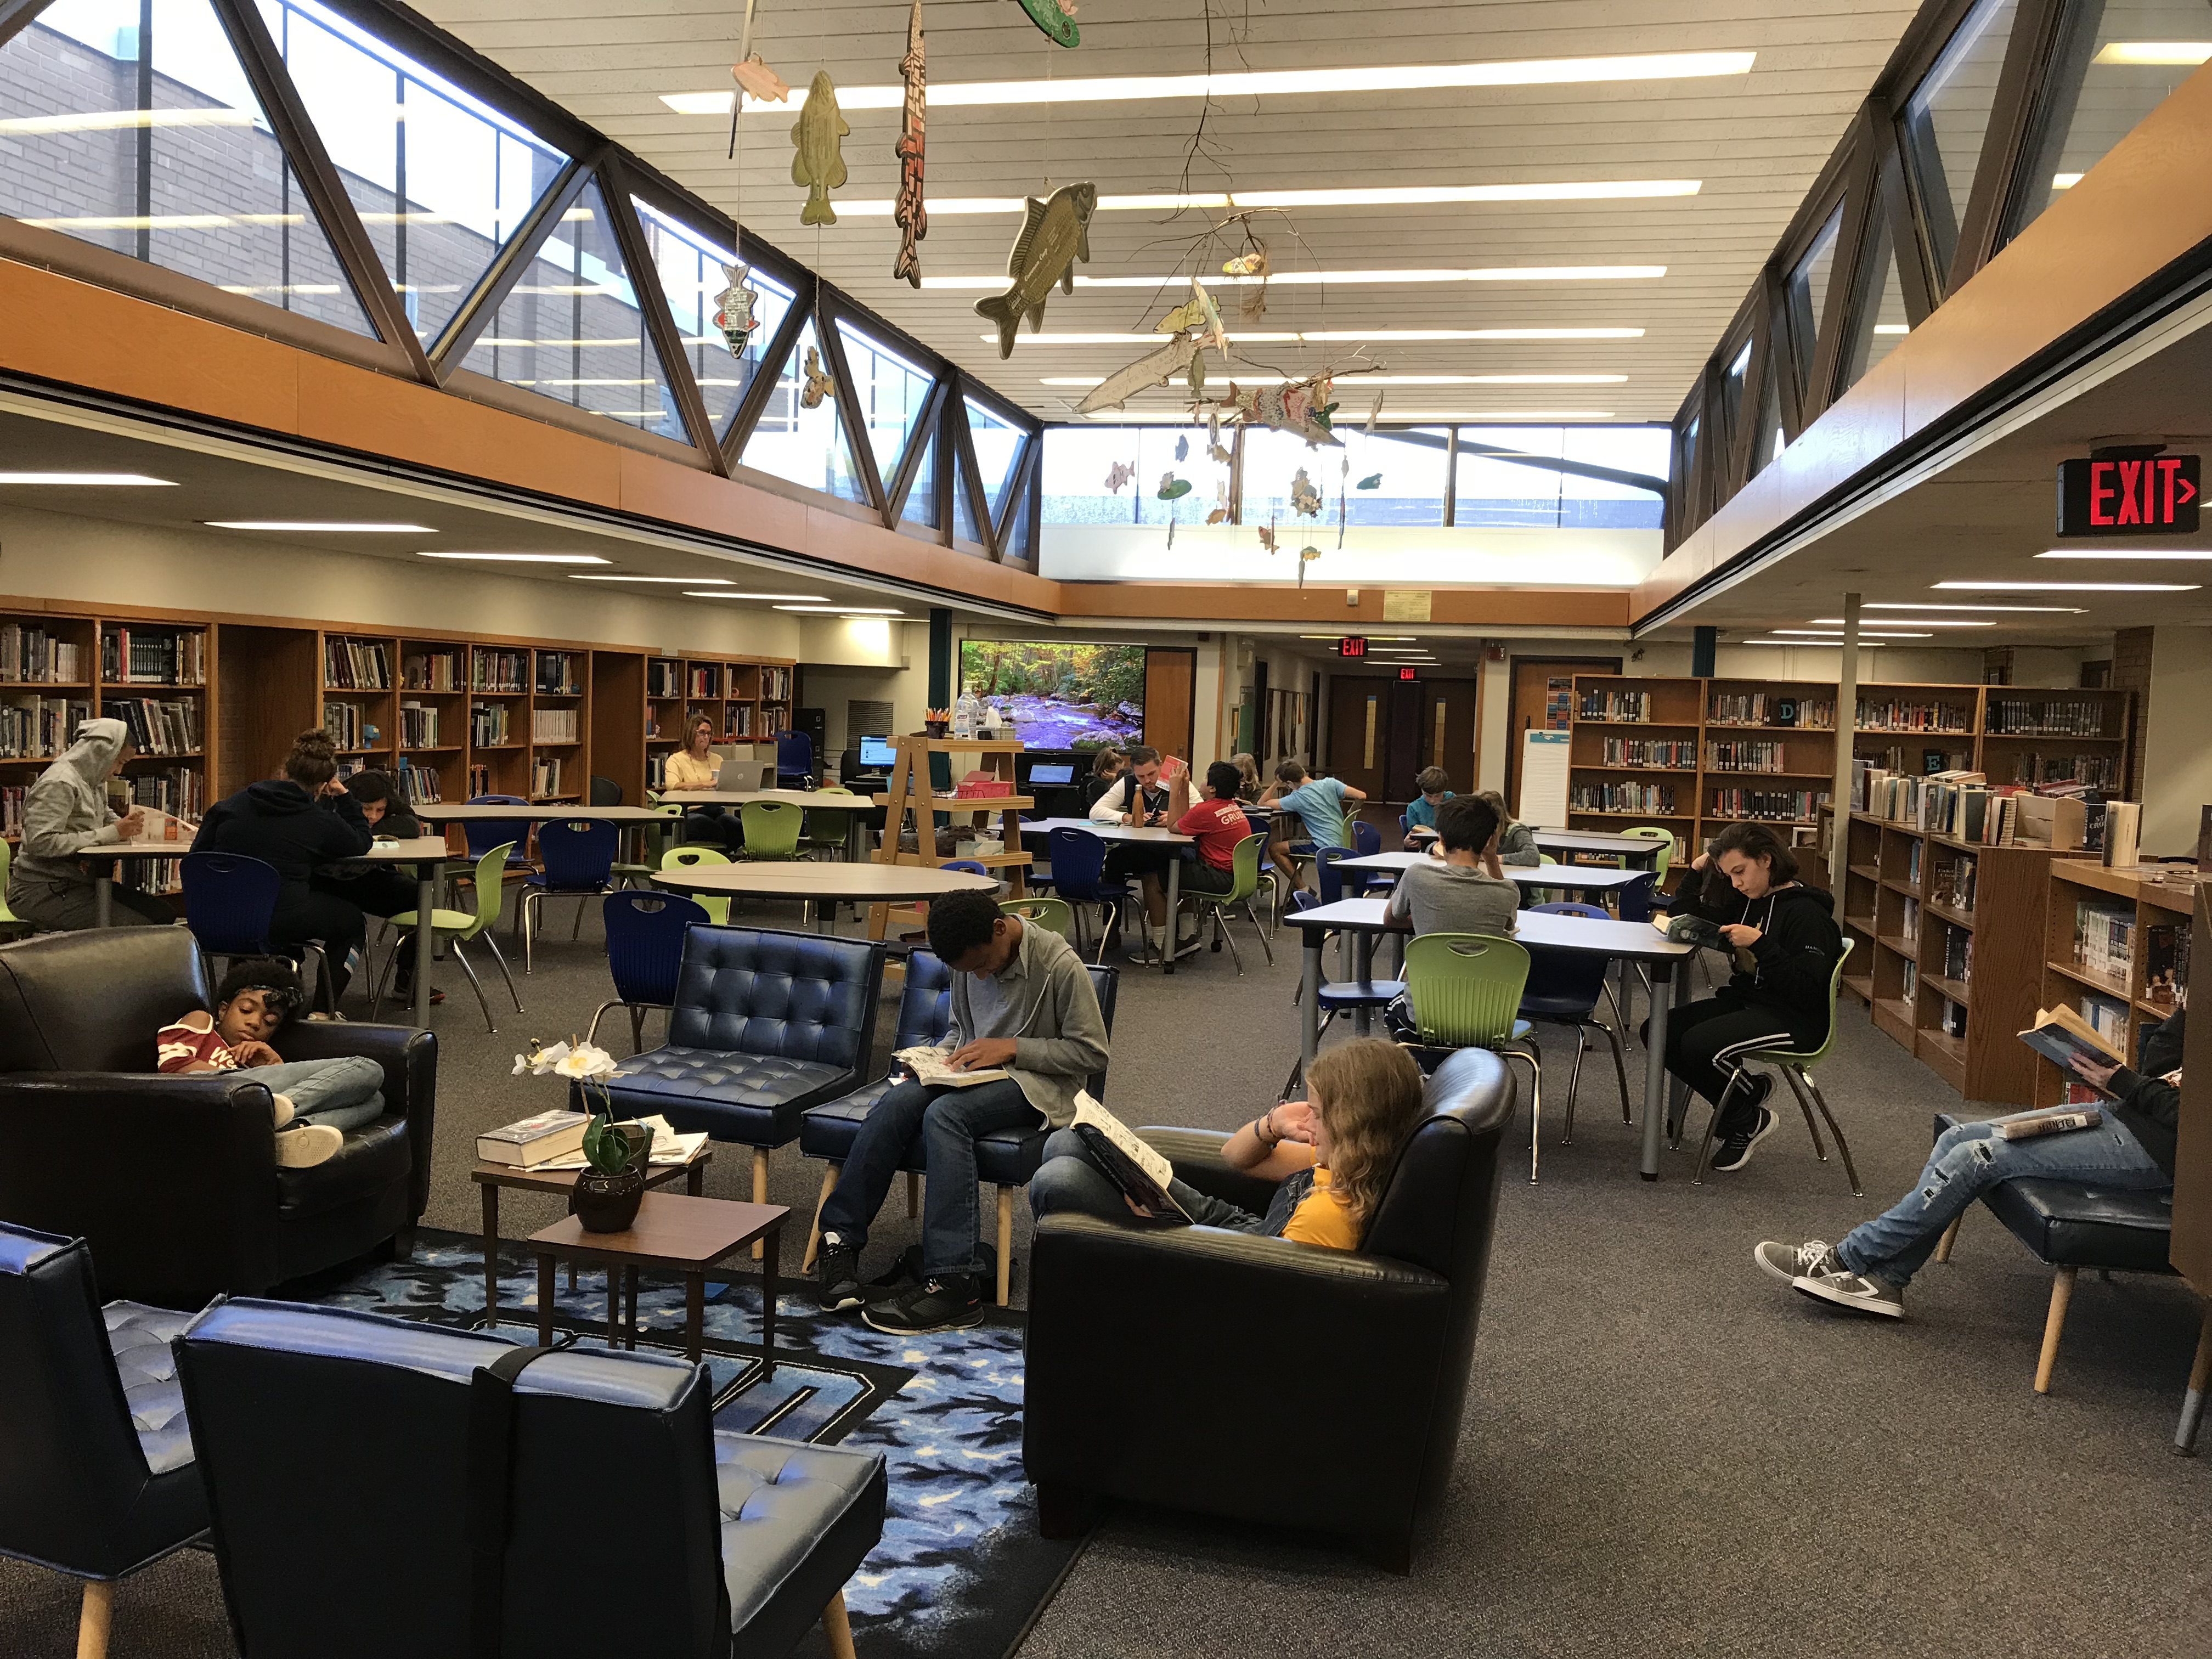 Kids reading in the LMC